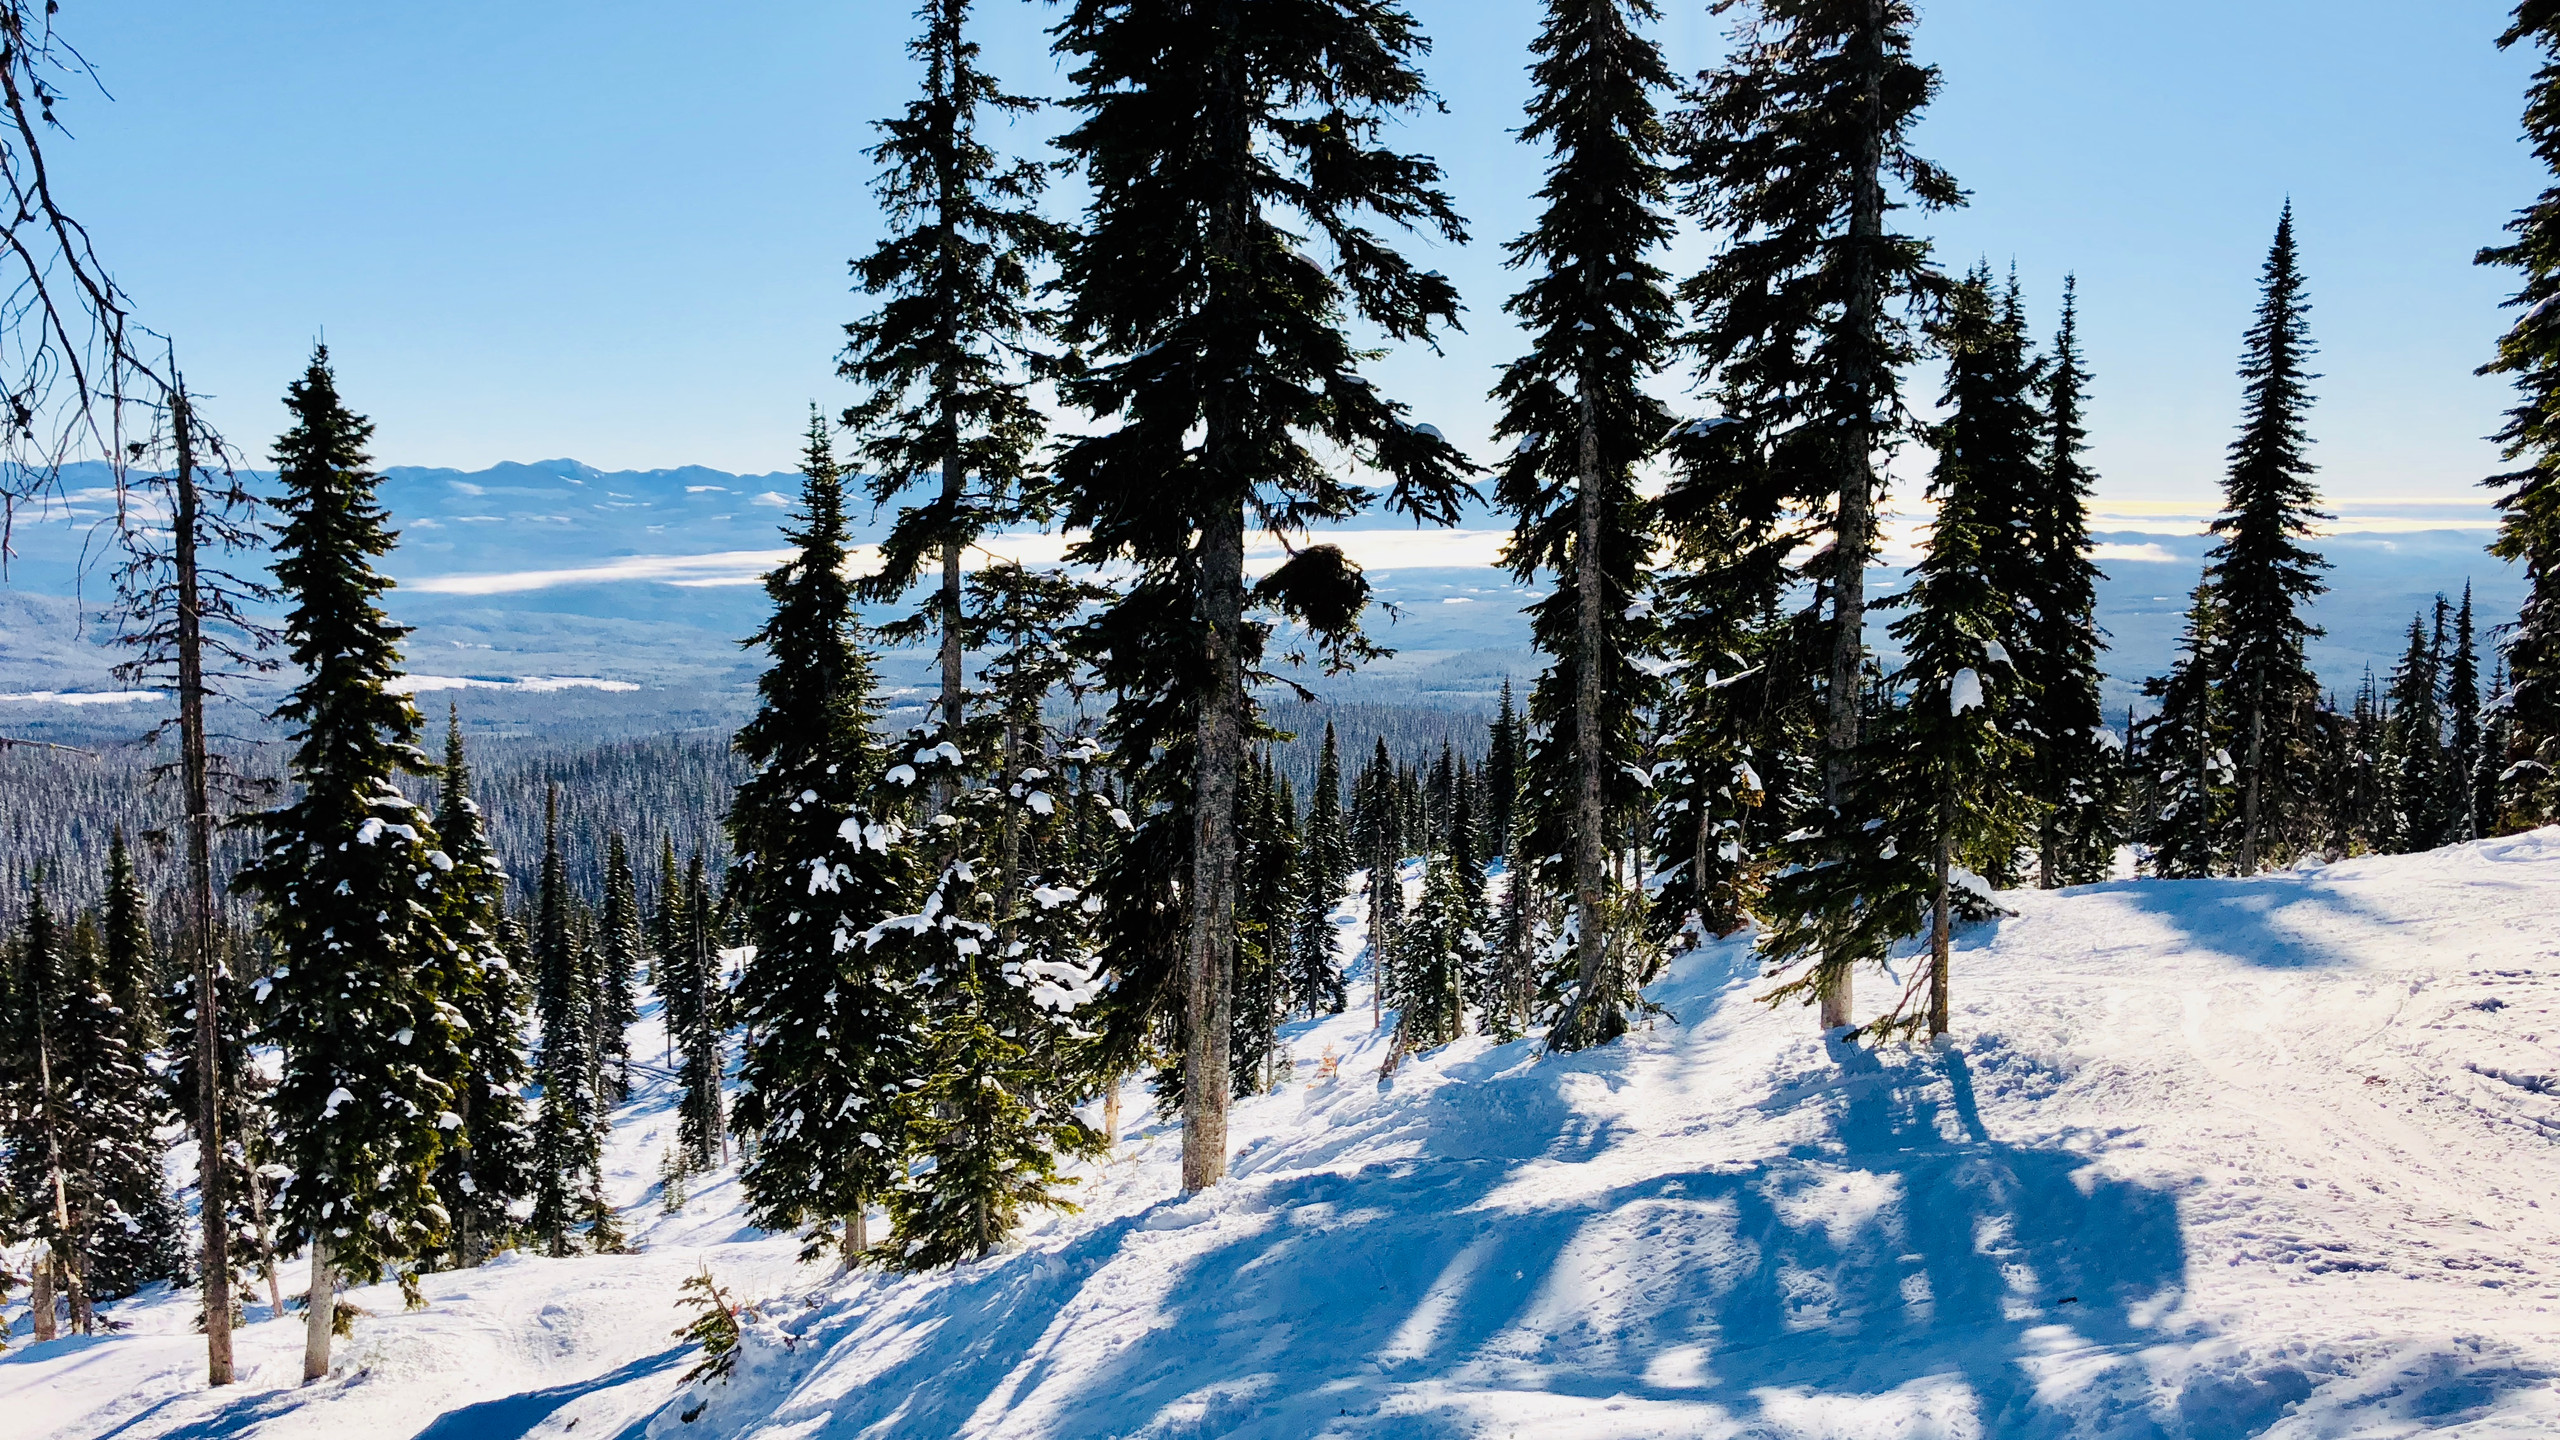 Tree Skiing in Black Forest side of Big White Mountain